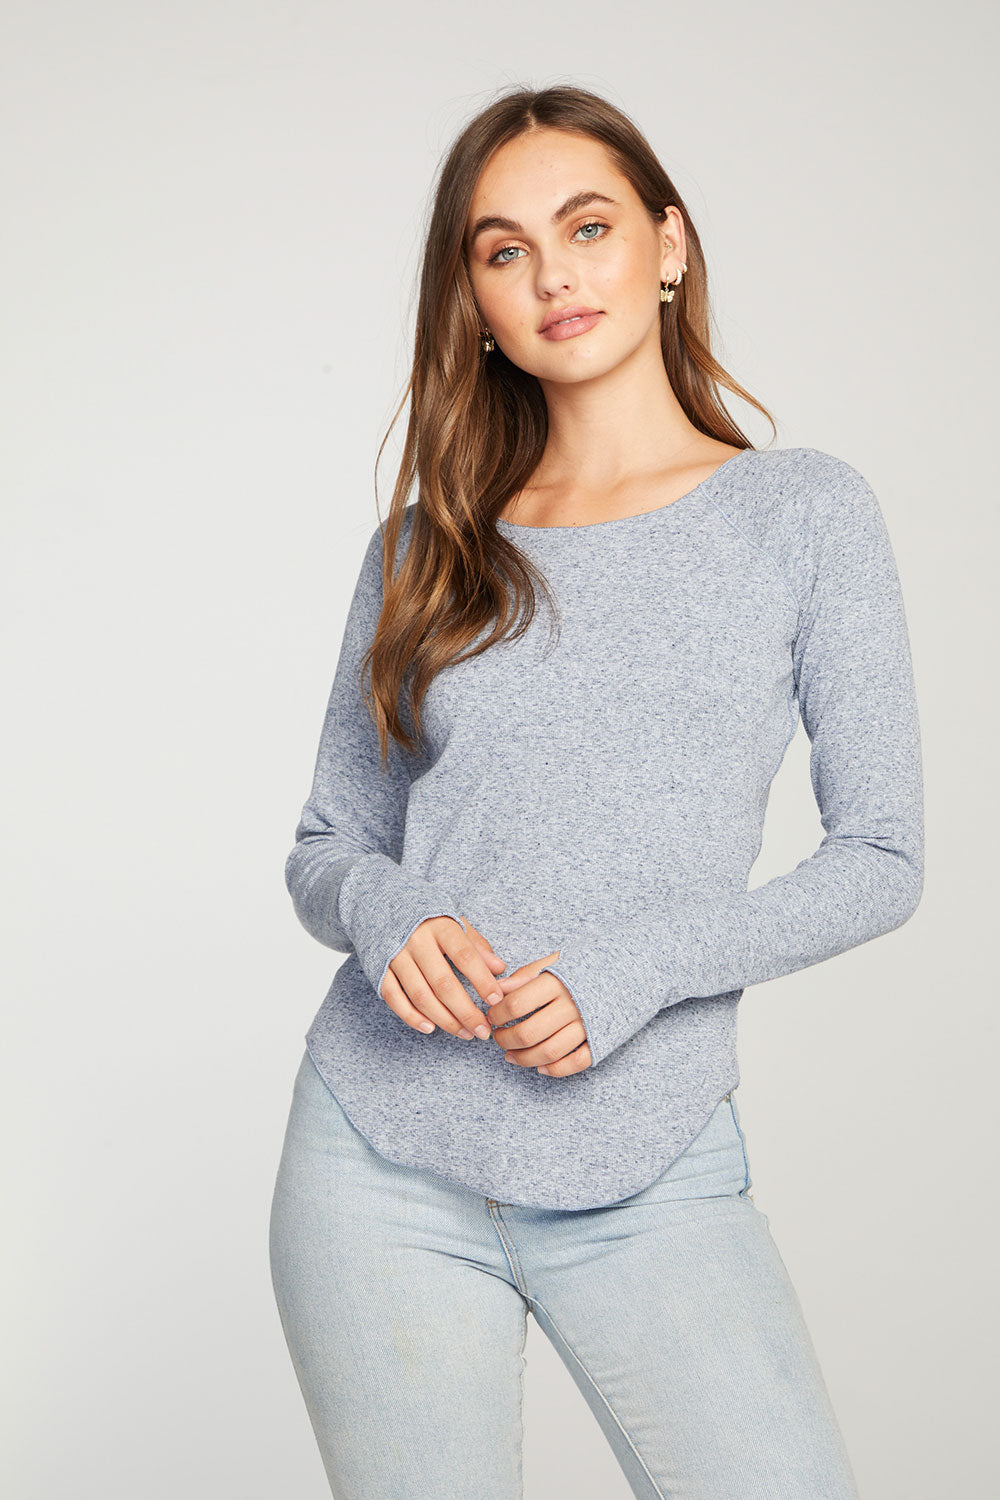 Linen Rib Long Sleeve Shirttail Raglan Tee with Thumbhole WOMENS - chaserbrand